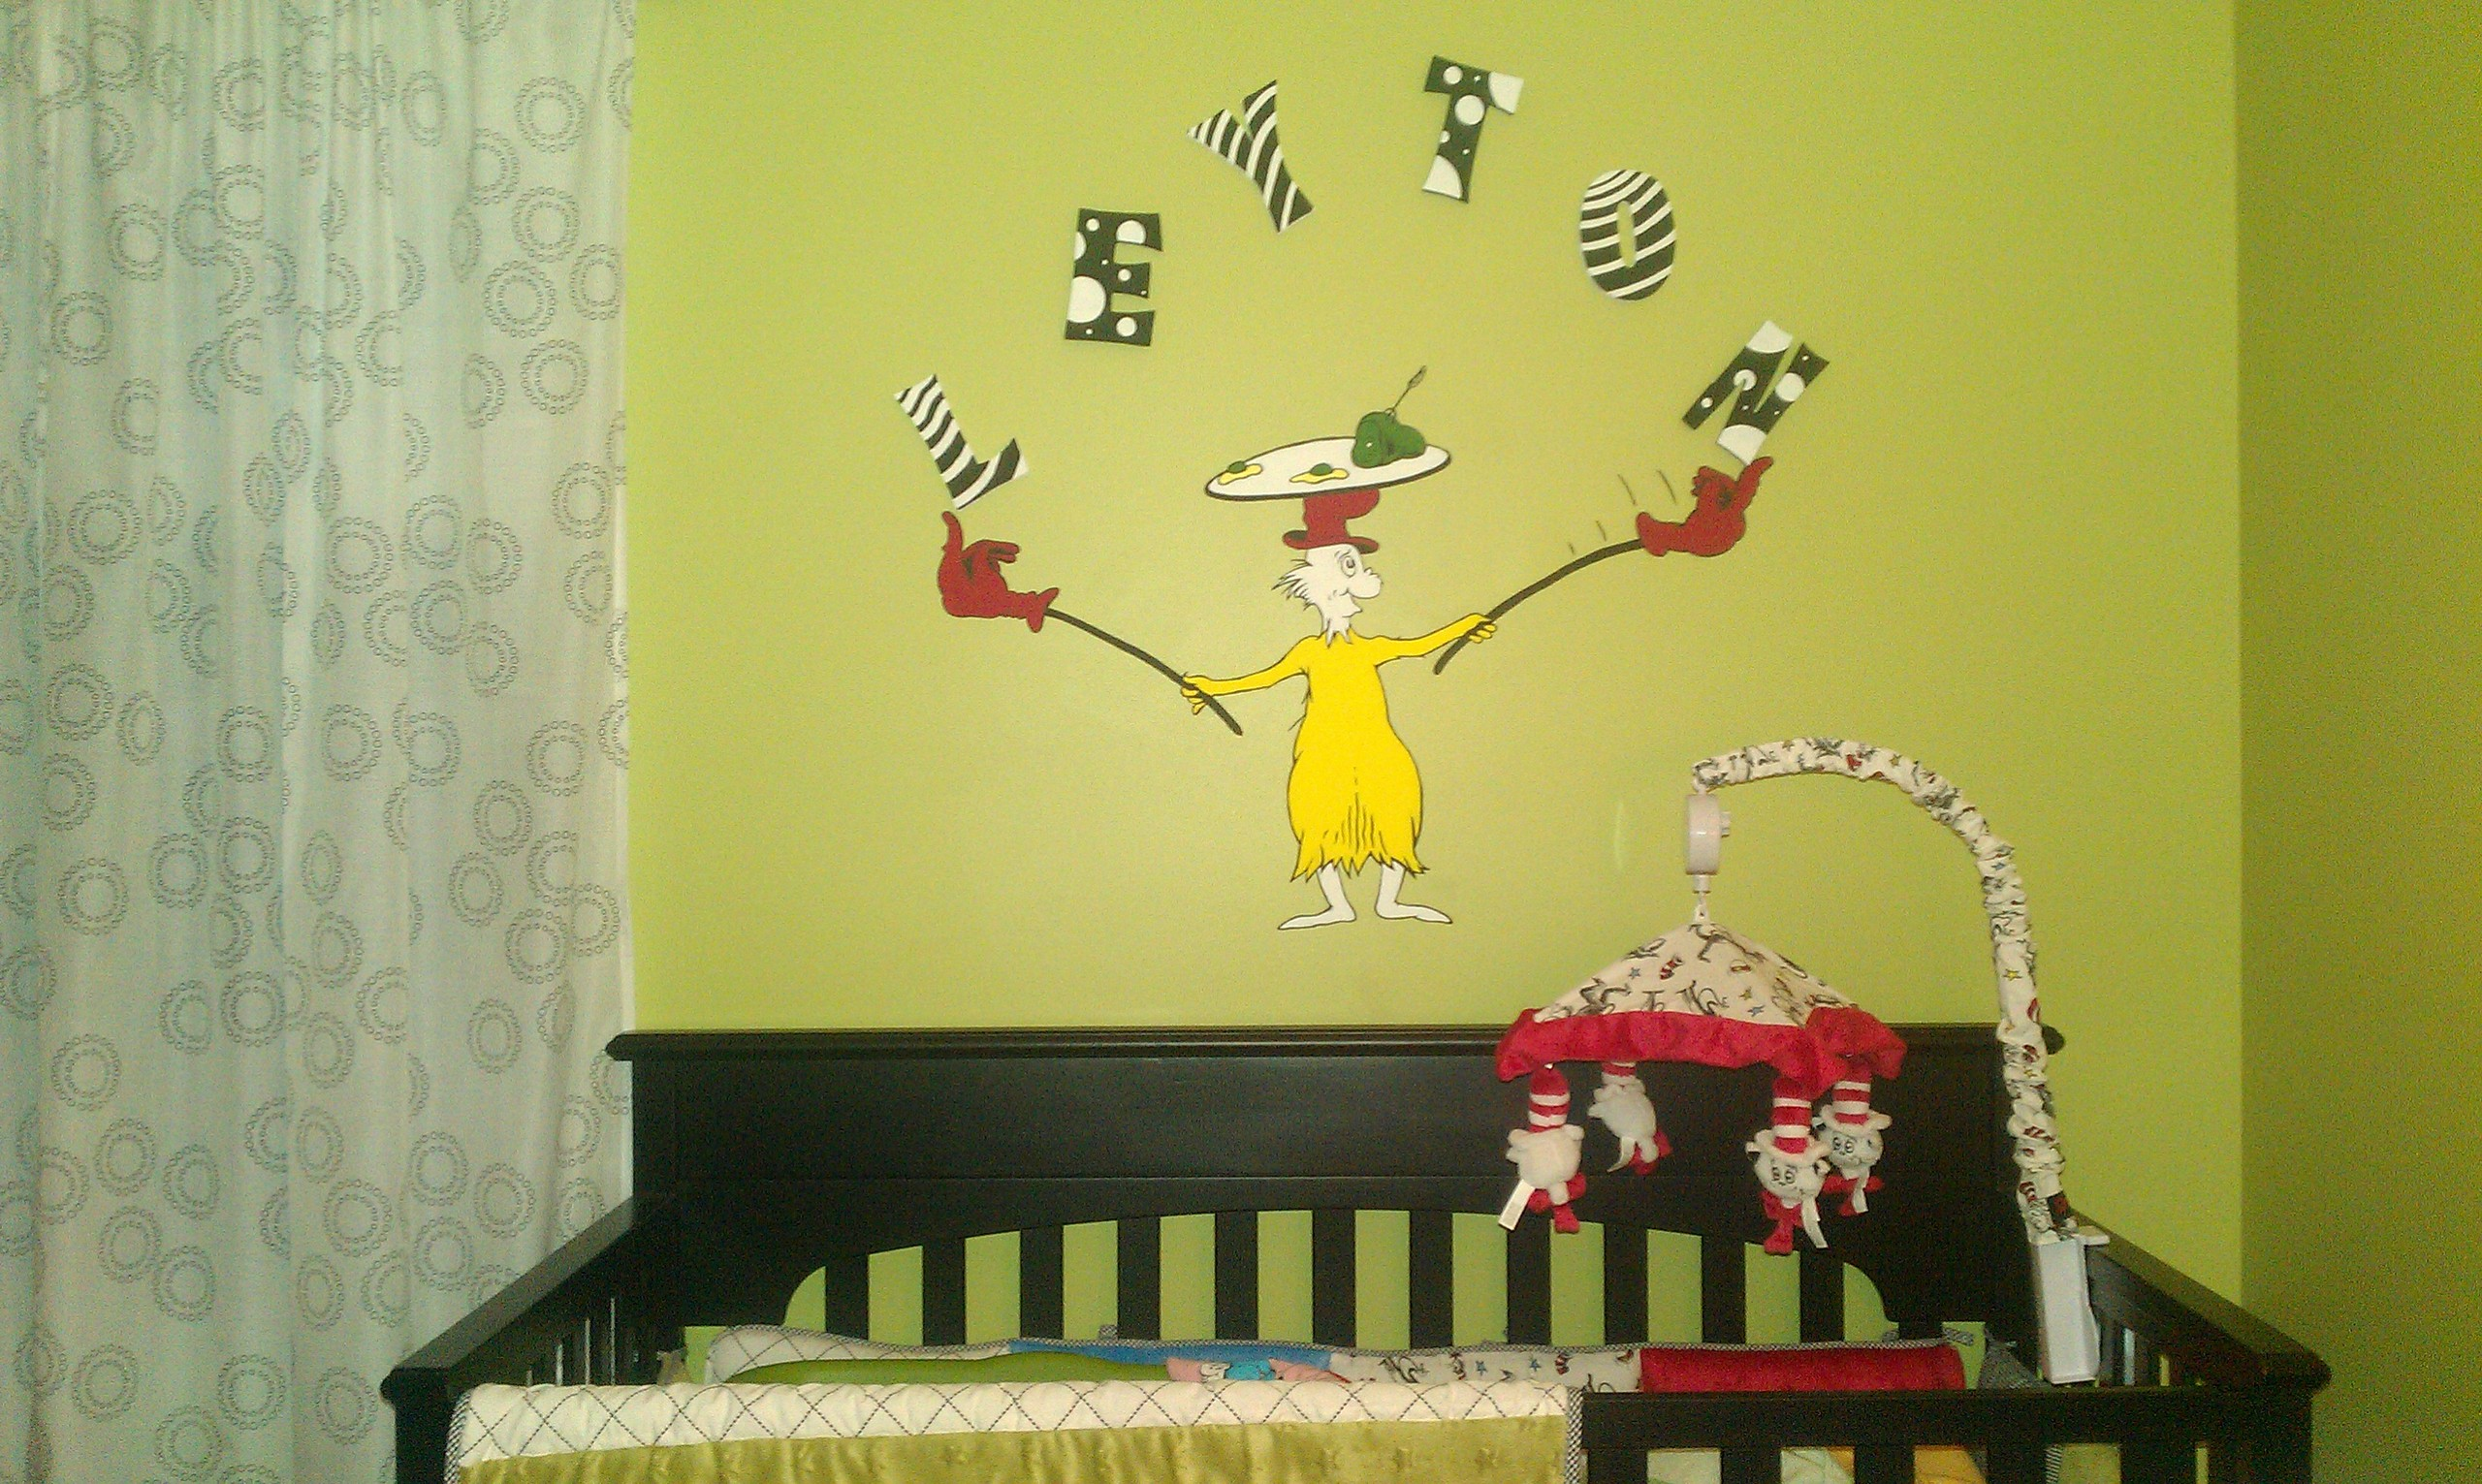 Dr seuss nursery mural dr seuss photo 25056621 fanpop for Dr seuss wall mural